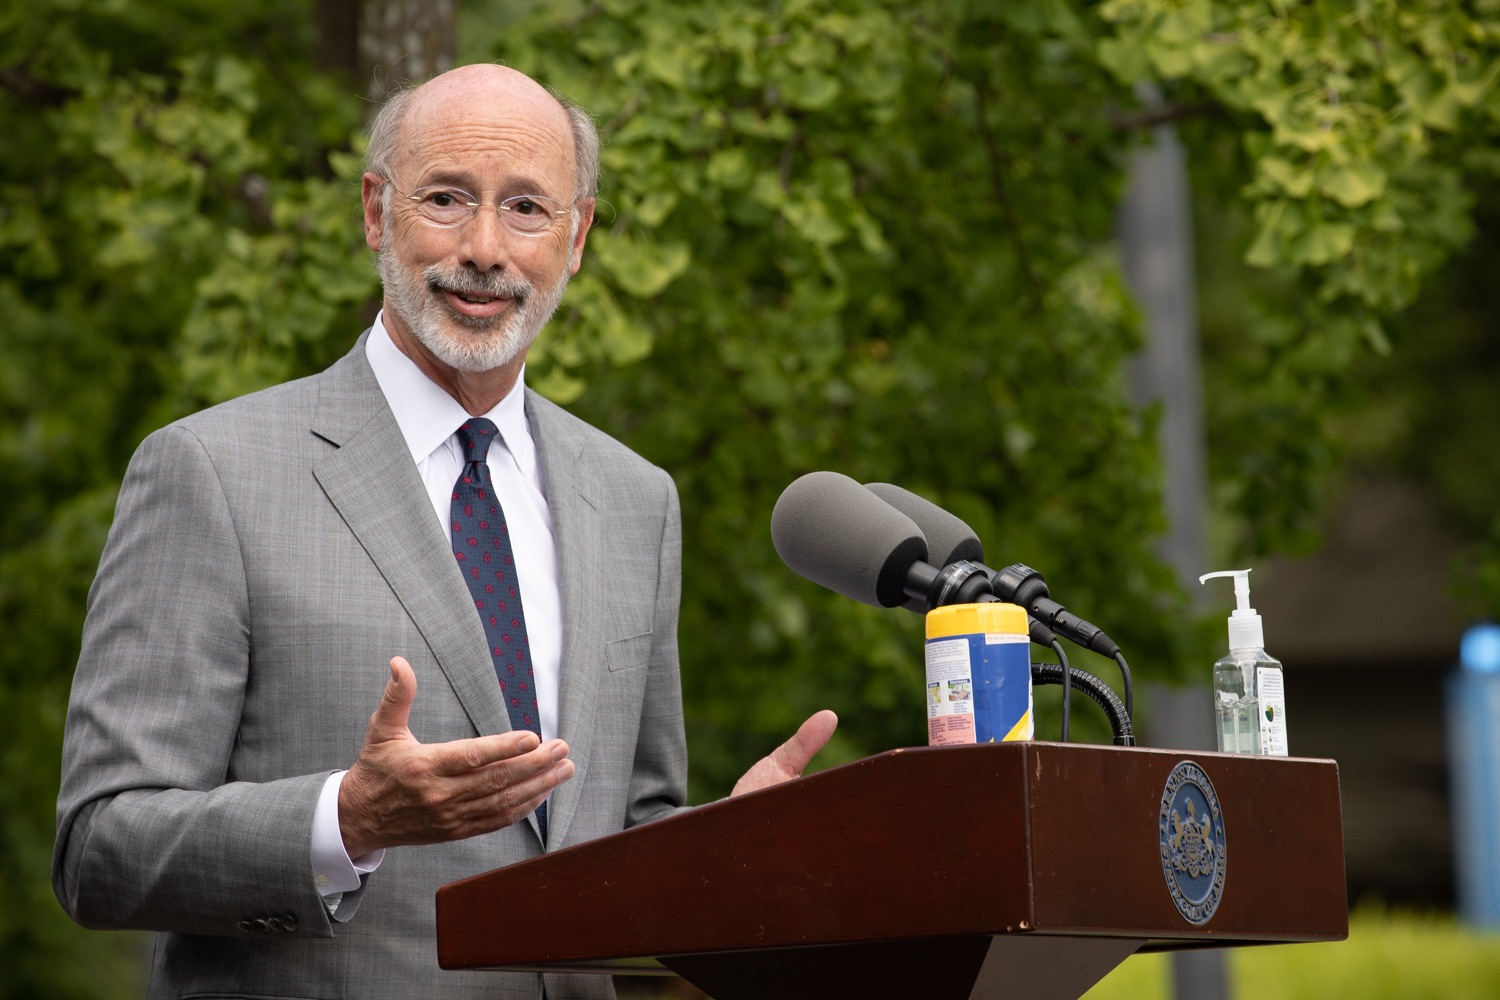 """<a href=""""https://filesource.wostreaming.net/commonwealthofpa/photo/18093_gov-healthcare_workers_dz_01.jpg"""" target=""""_blank"""">⇣Download Photo<br></a>Pennsylvania Governor Tom Wolf answering questions from the press during his visit to Milton S. Hershey Medical Center. As the commonwealth continues its measured, phased reopening and COVID-19 case counts continue to decline, Governor Tom Wolf visited Penn State Milton S. Hershey Medical Center today to thank staff and learn more about how the facility is handling the pandemic and preparing for a possible resurgence in the fall.  Harrisburg, PA  June 24, 2020"""